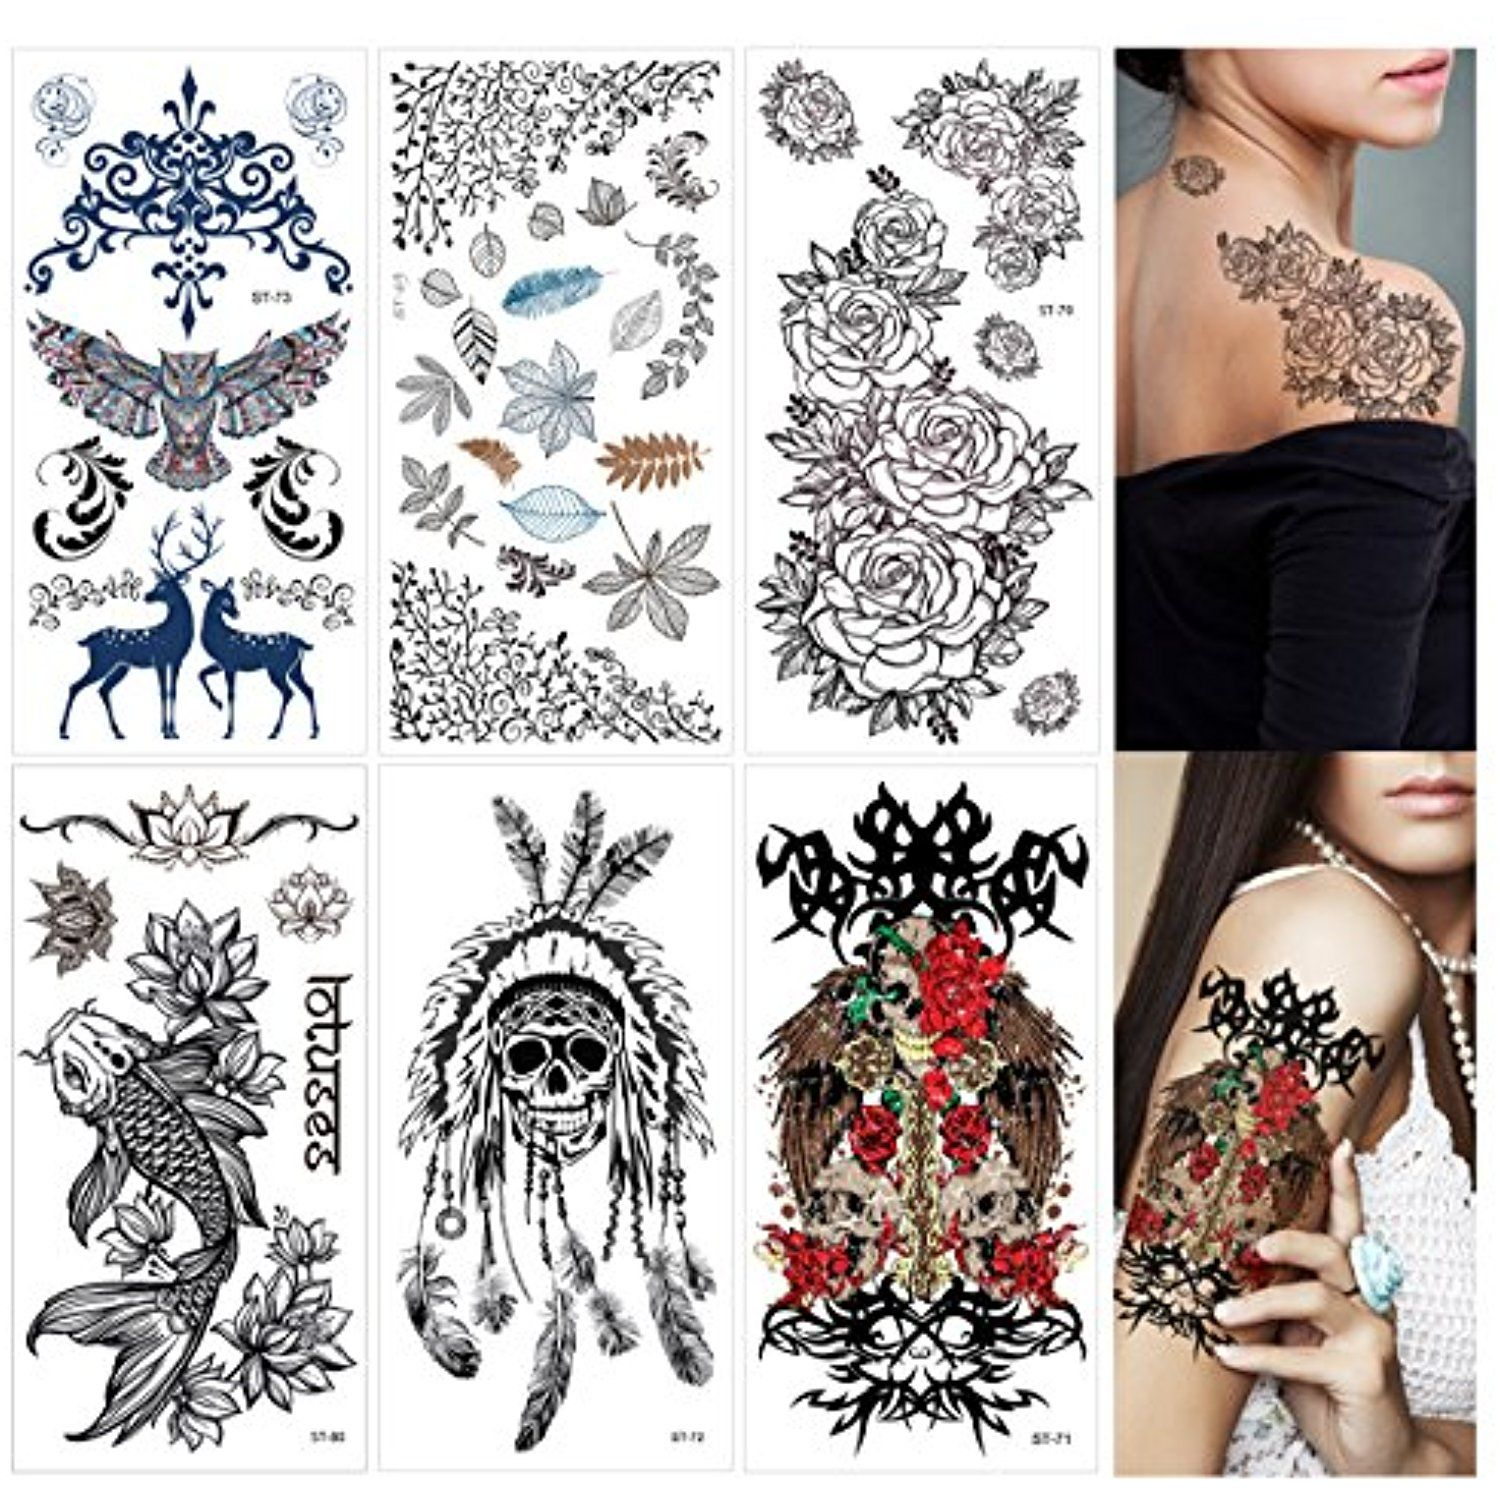 Supperb Mix Nature Floral Spirit Temporary Tattoos 6 Pack Twin Roses Leaves Skull Koi Fish Lotus Owl Temporary Tattoos Tattoos Halloween Makeup Looks